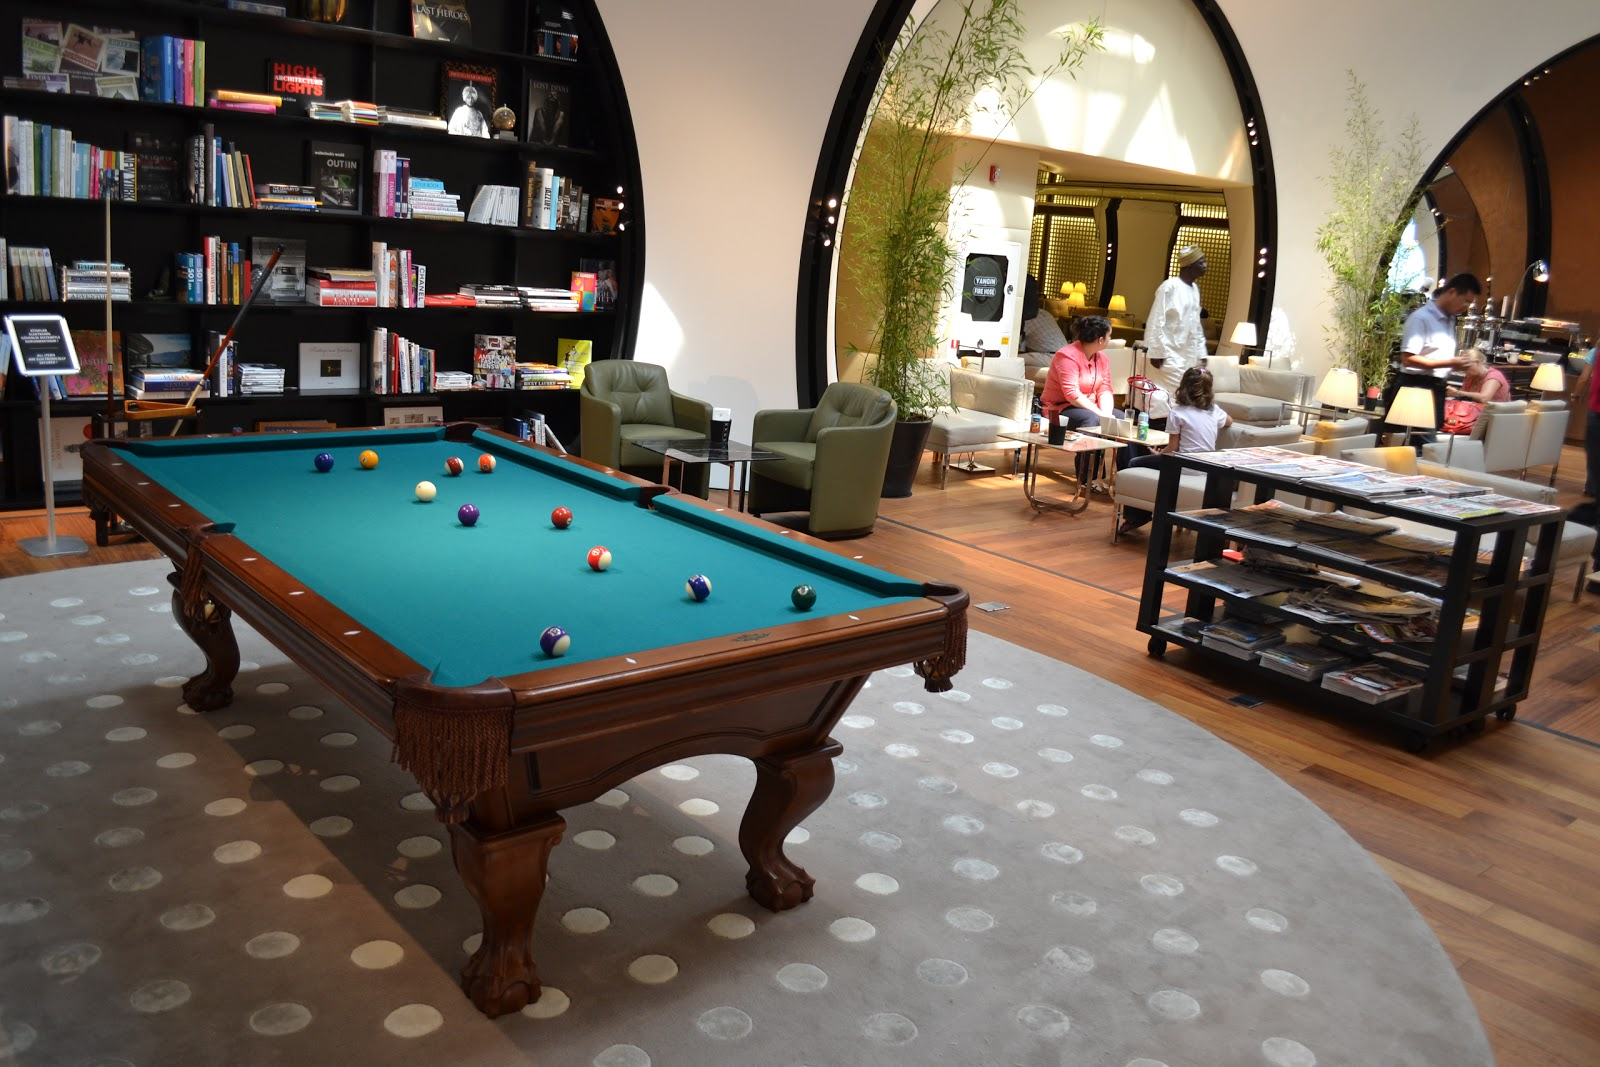 Billiard Traveler Unexpected Billiards Istanbul Airport - Travel pool table